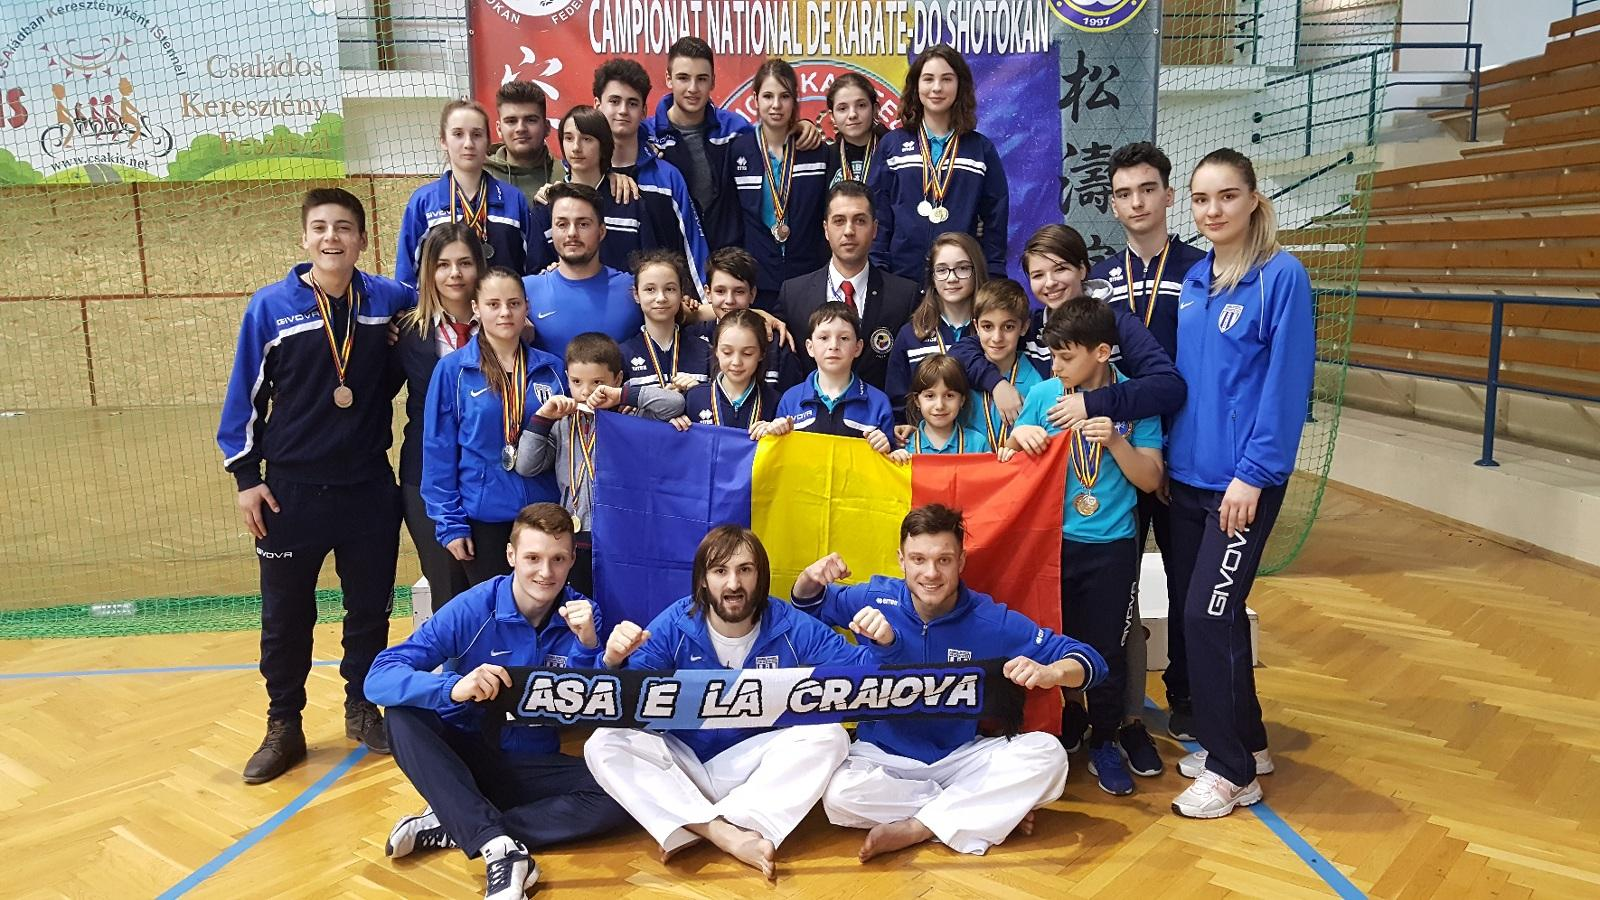 CAMPIONATUL NATIONAL DE KARATE SHOTOKAN - WSF